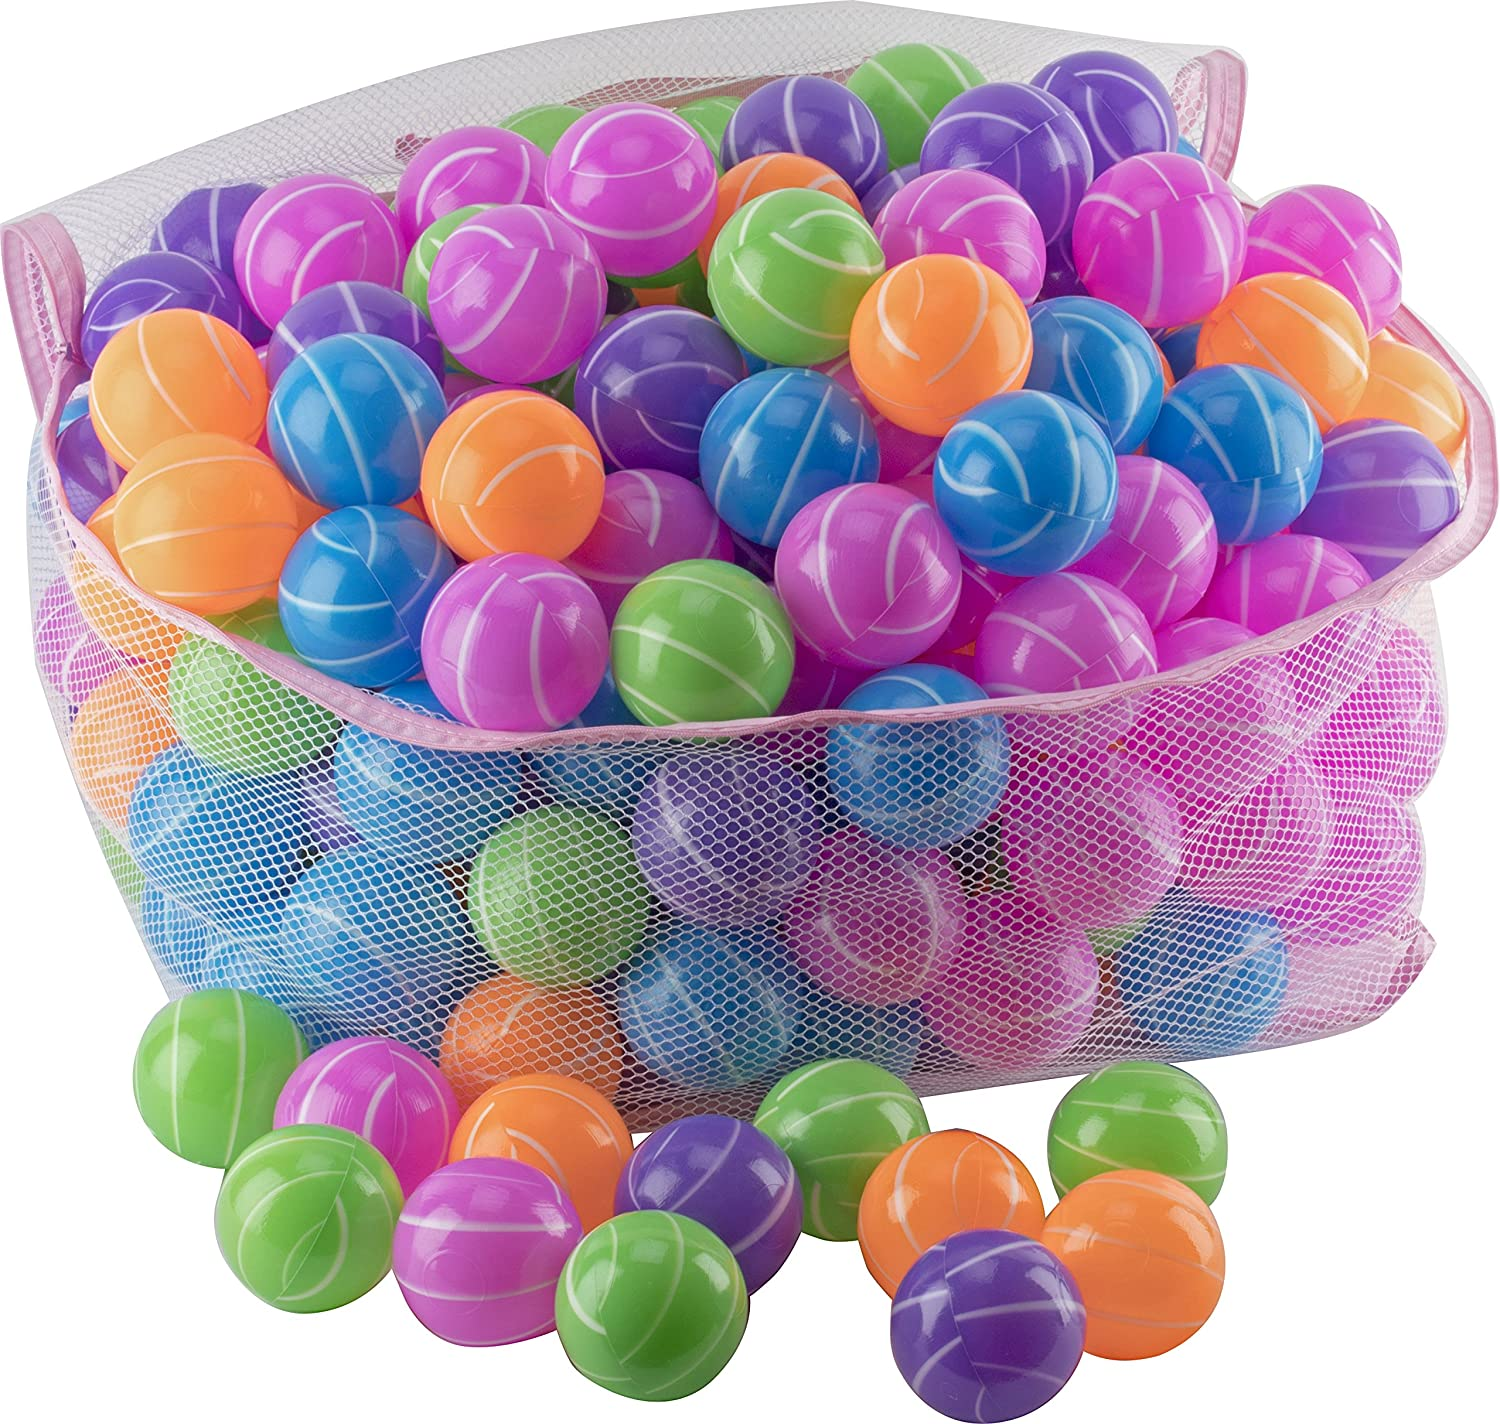 Play22 Ball Pit 200 Pack - Stripe Shape - Ball Pit Balls Crush Proof BPA Free - Includes Reusable Zipper Mesh Bag - Colorful Fun Ball Pit for Kids and Baby - Ball Pit for Any Ball Pool - Original